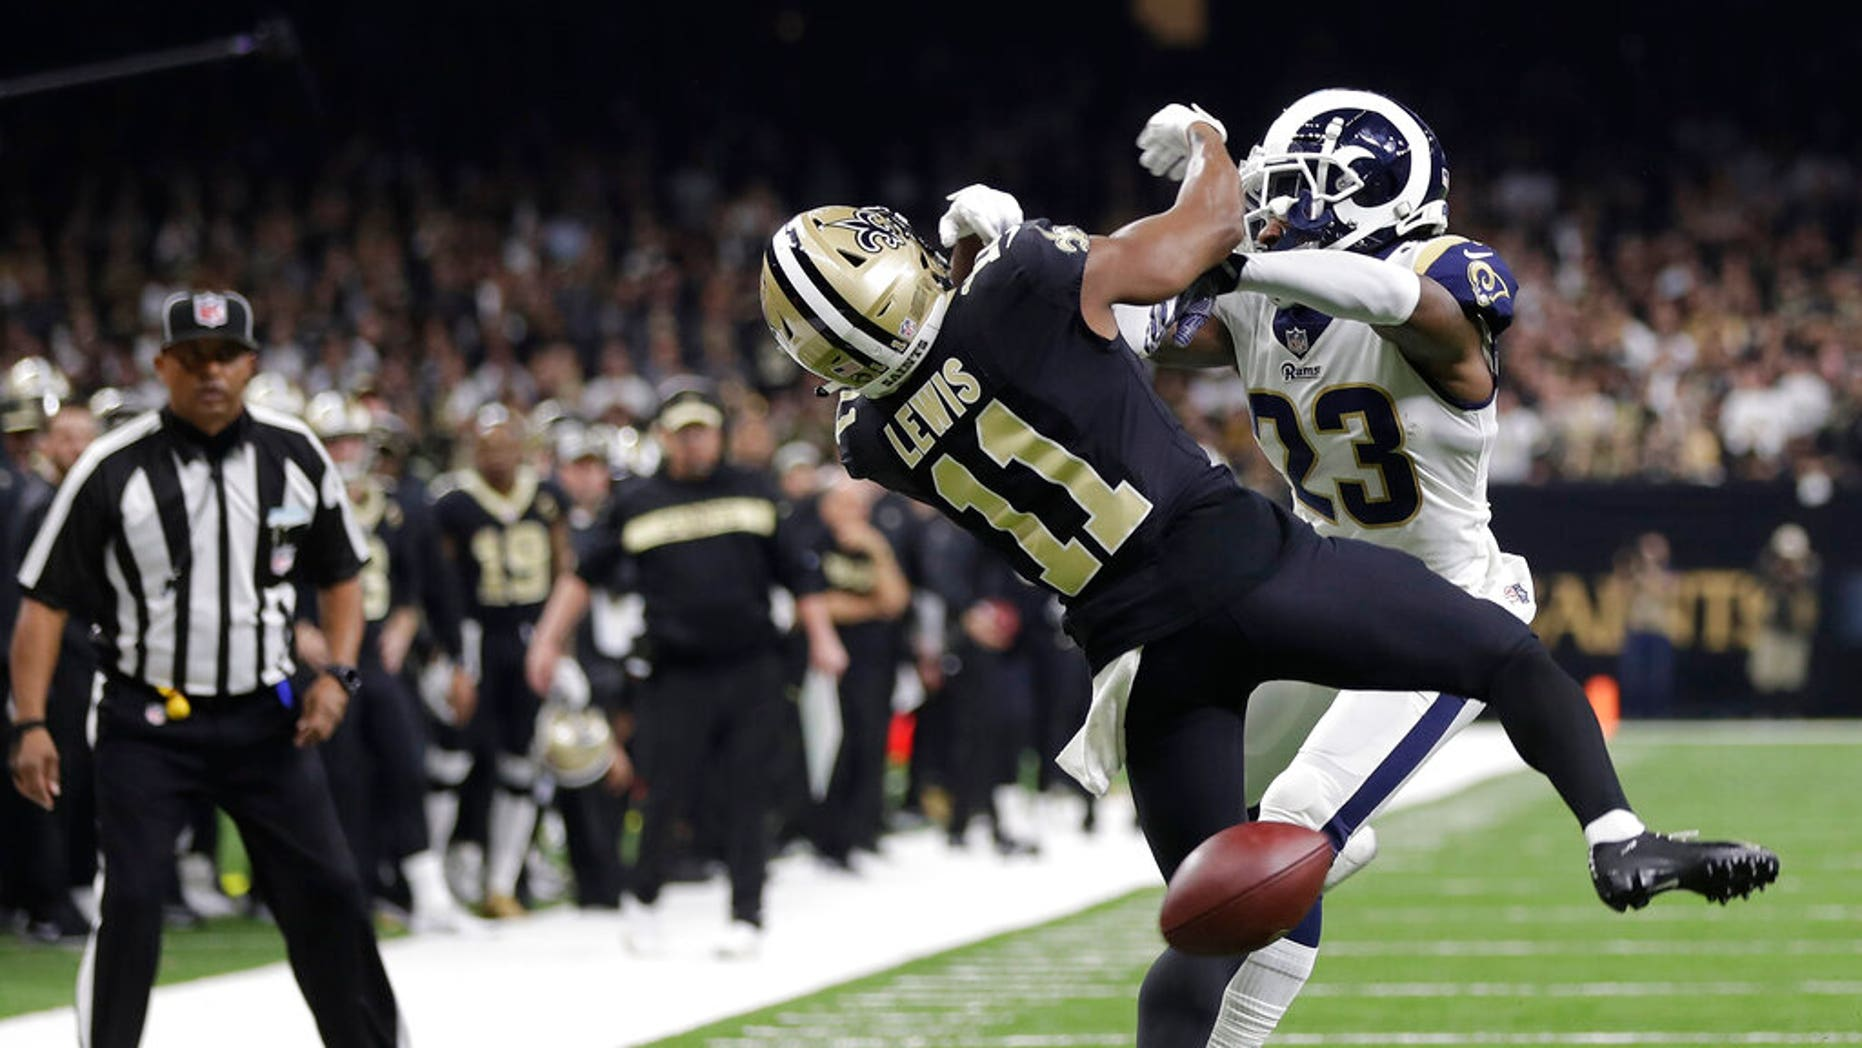 Saxon receiver Tommylee Lewis (11) works for a coach against Los Angeles Rams defender Nickell Robey-Coleman (23) during the second half of the NFL football NFC championship game Sunday.